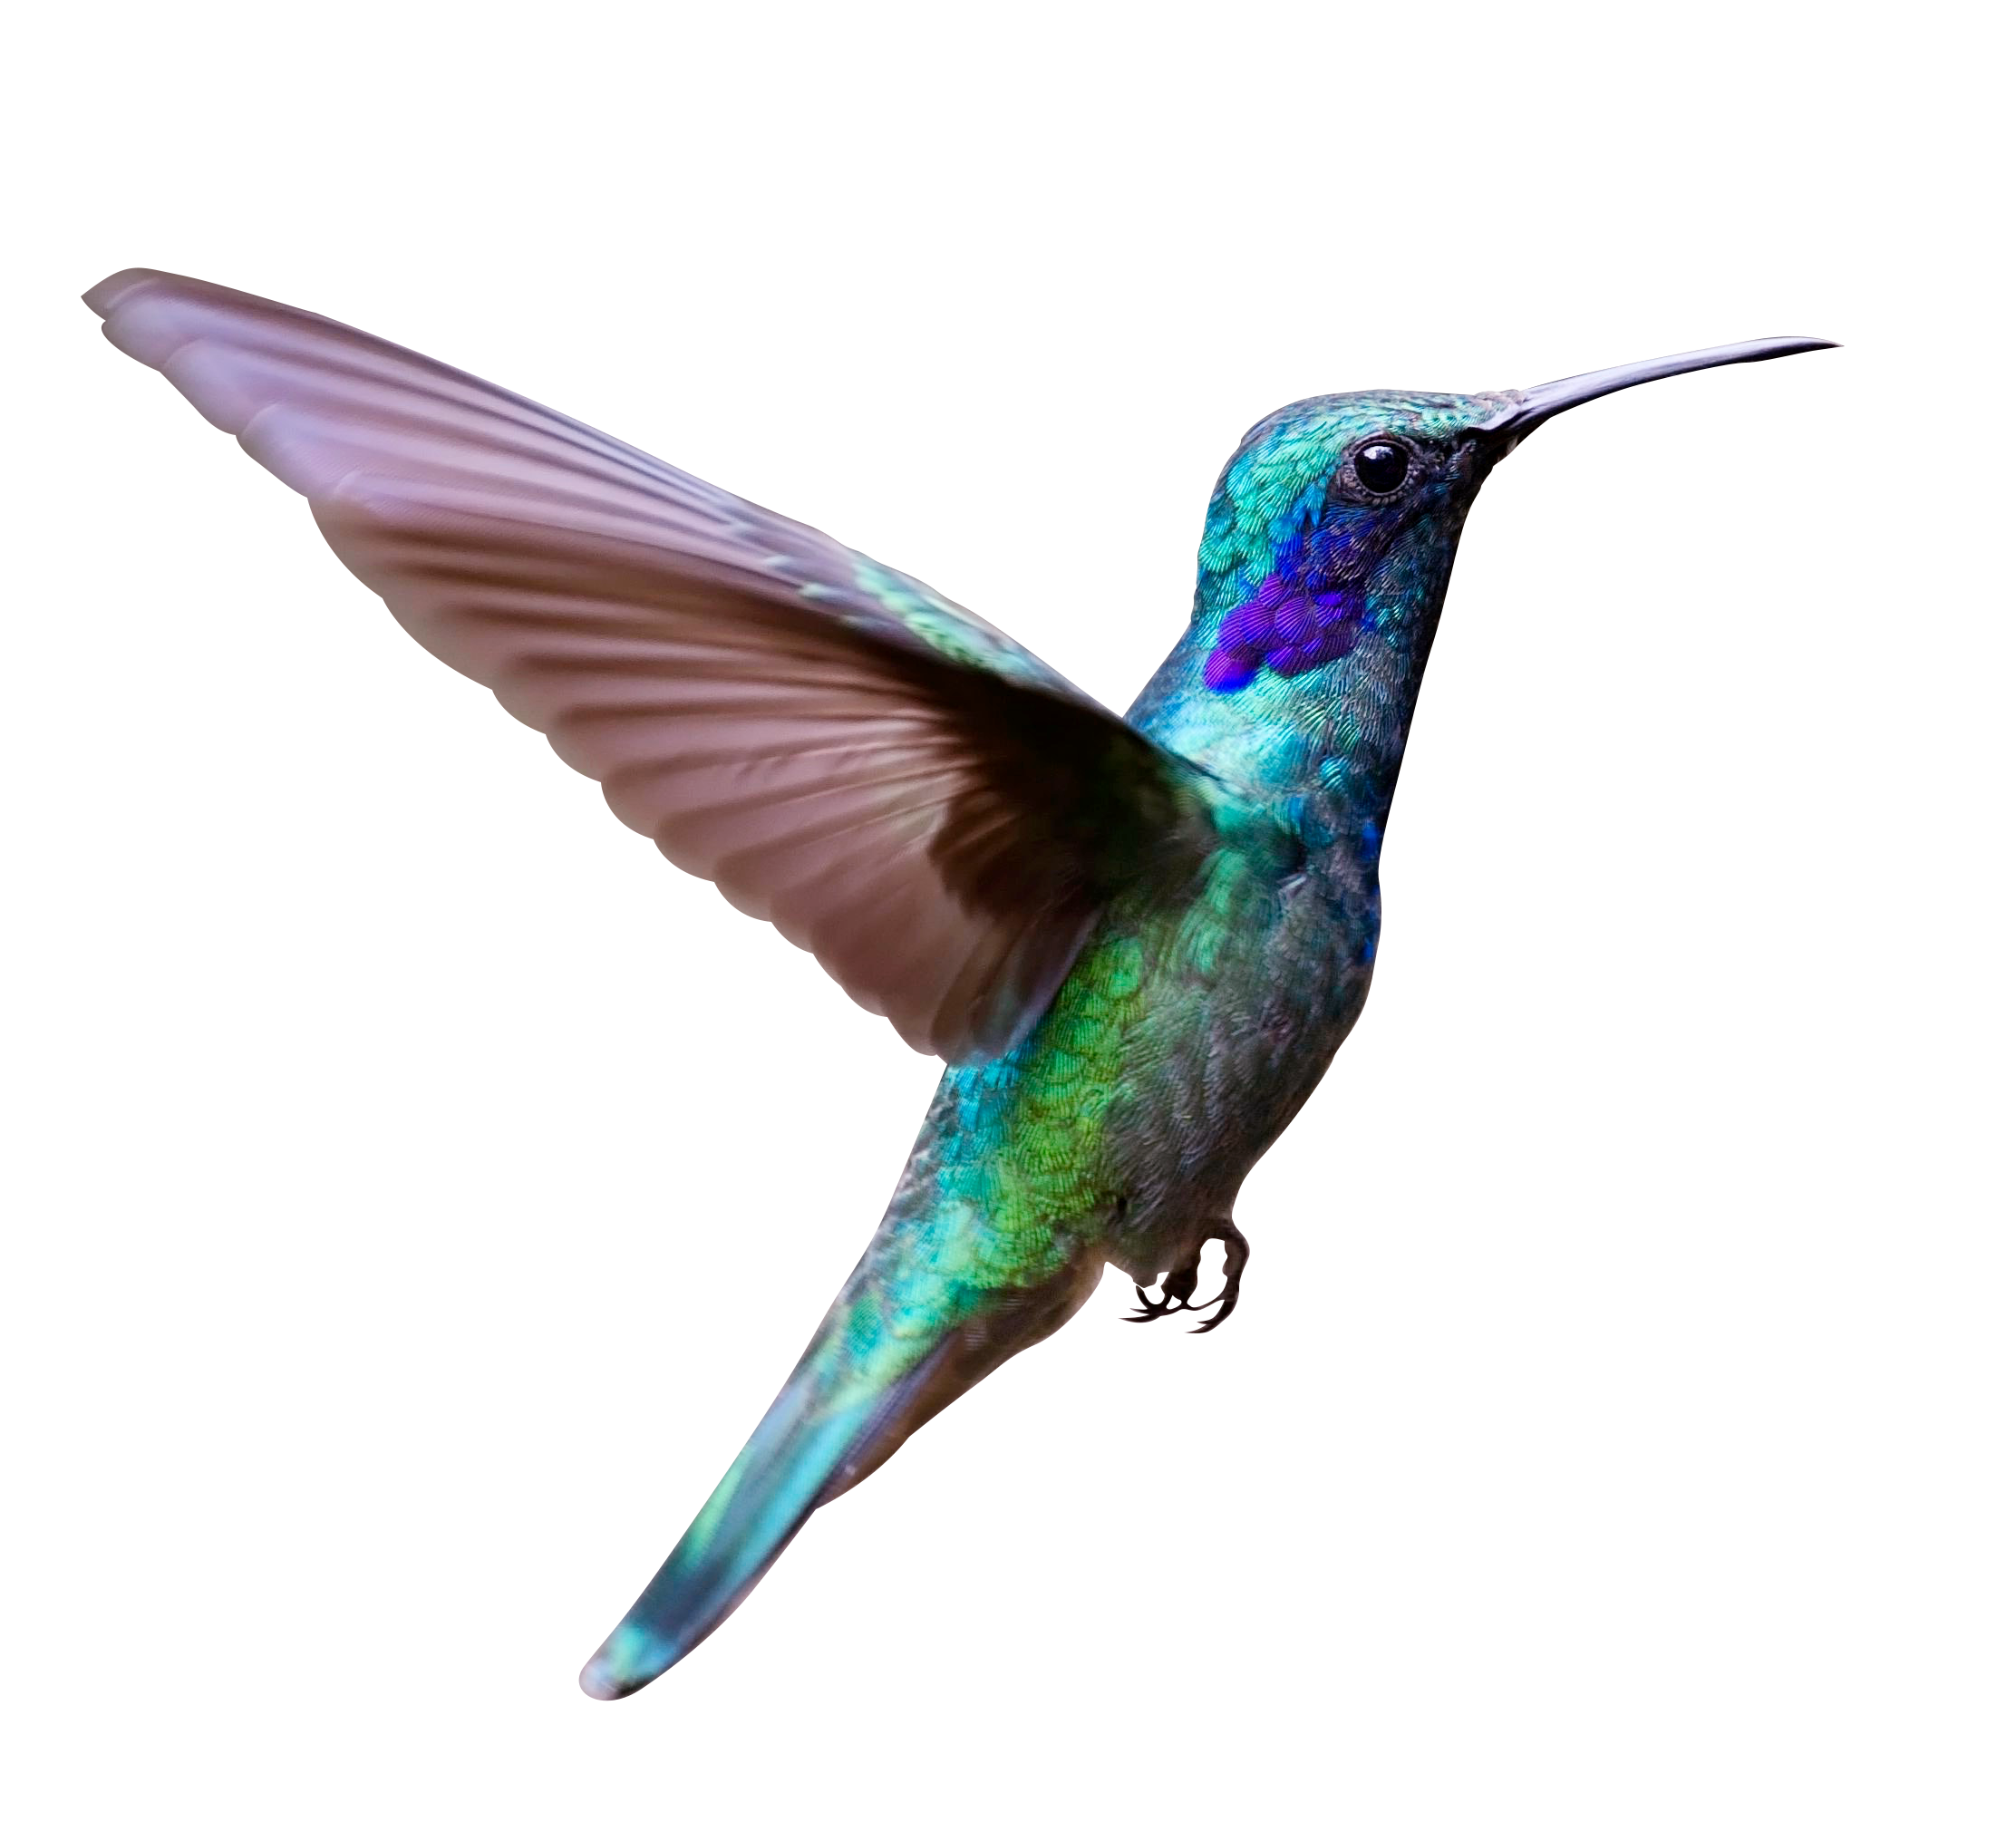 Flying Bird PNG Image Free Download searchpng.com.